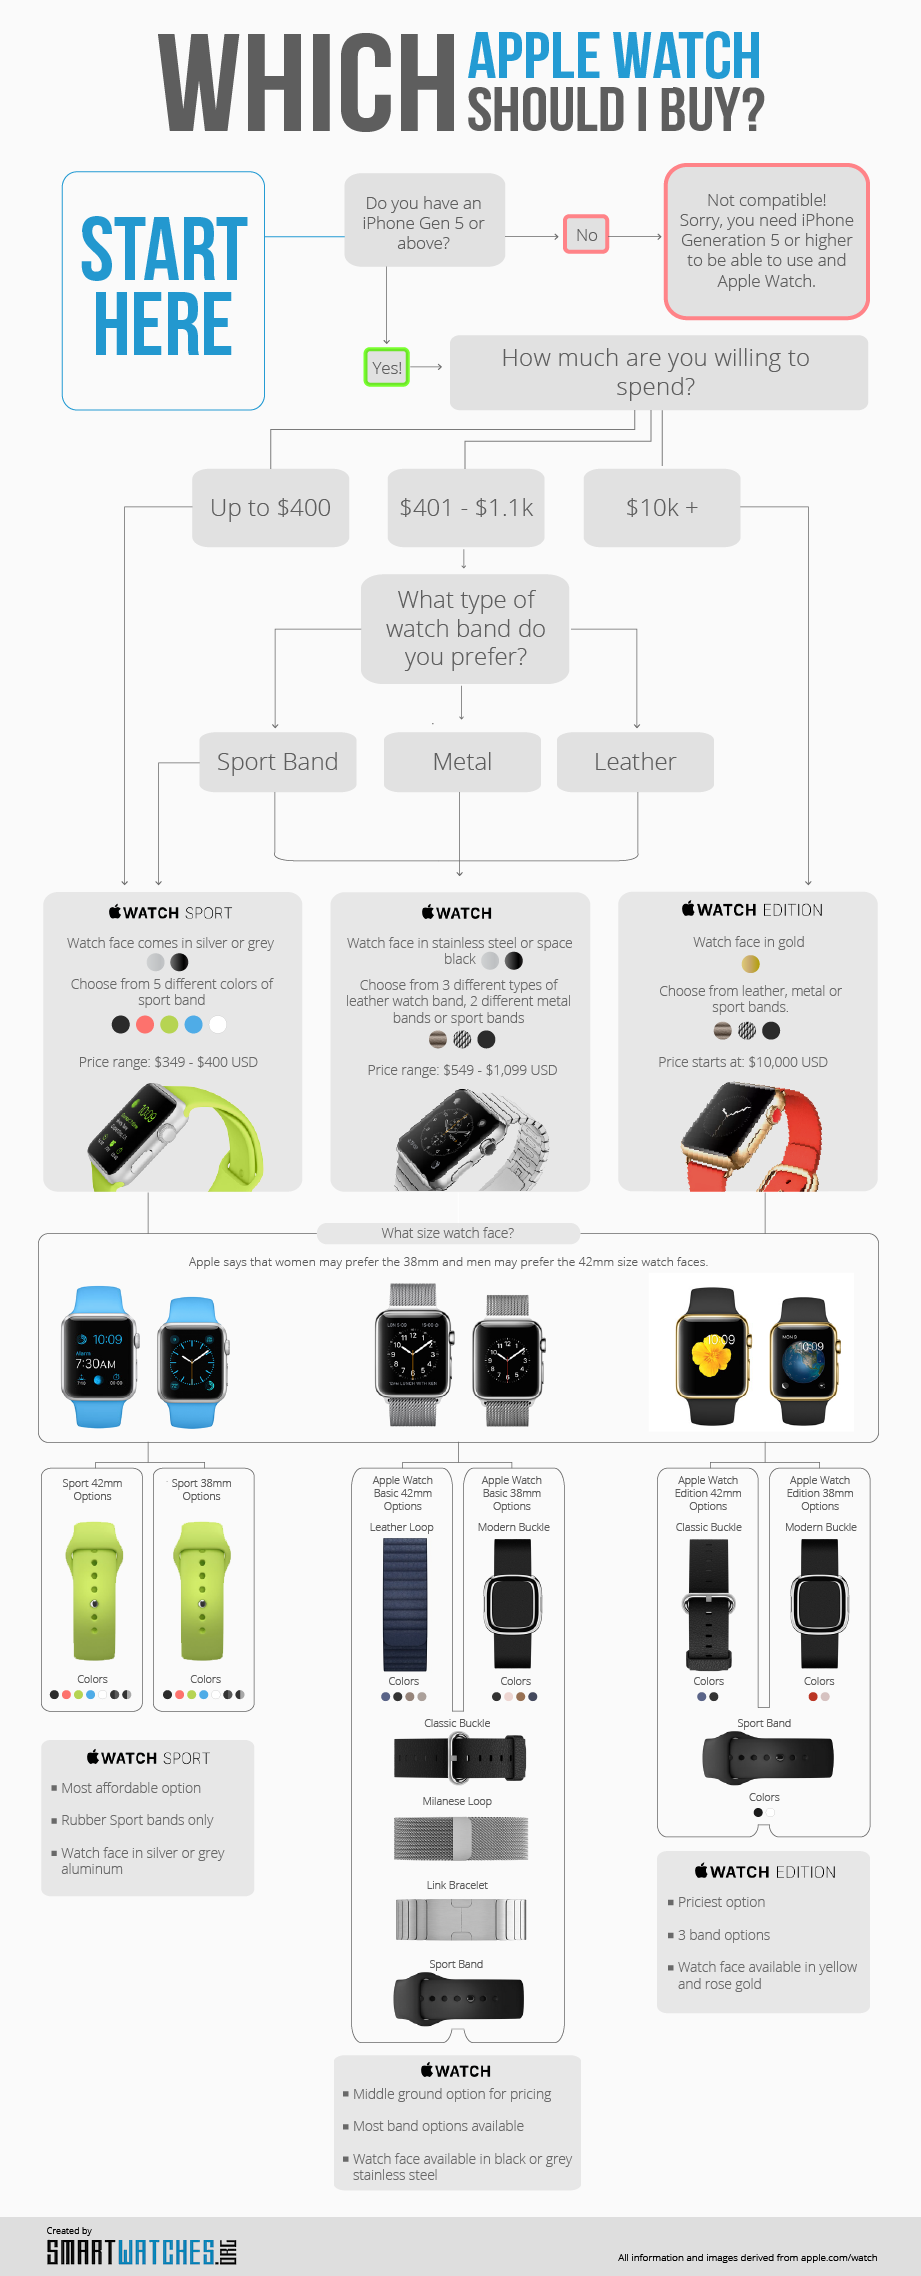 Which Apple Watch Should I Buy? (Infographic)